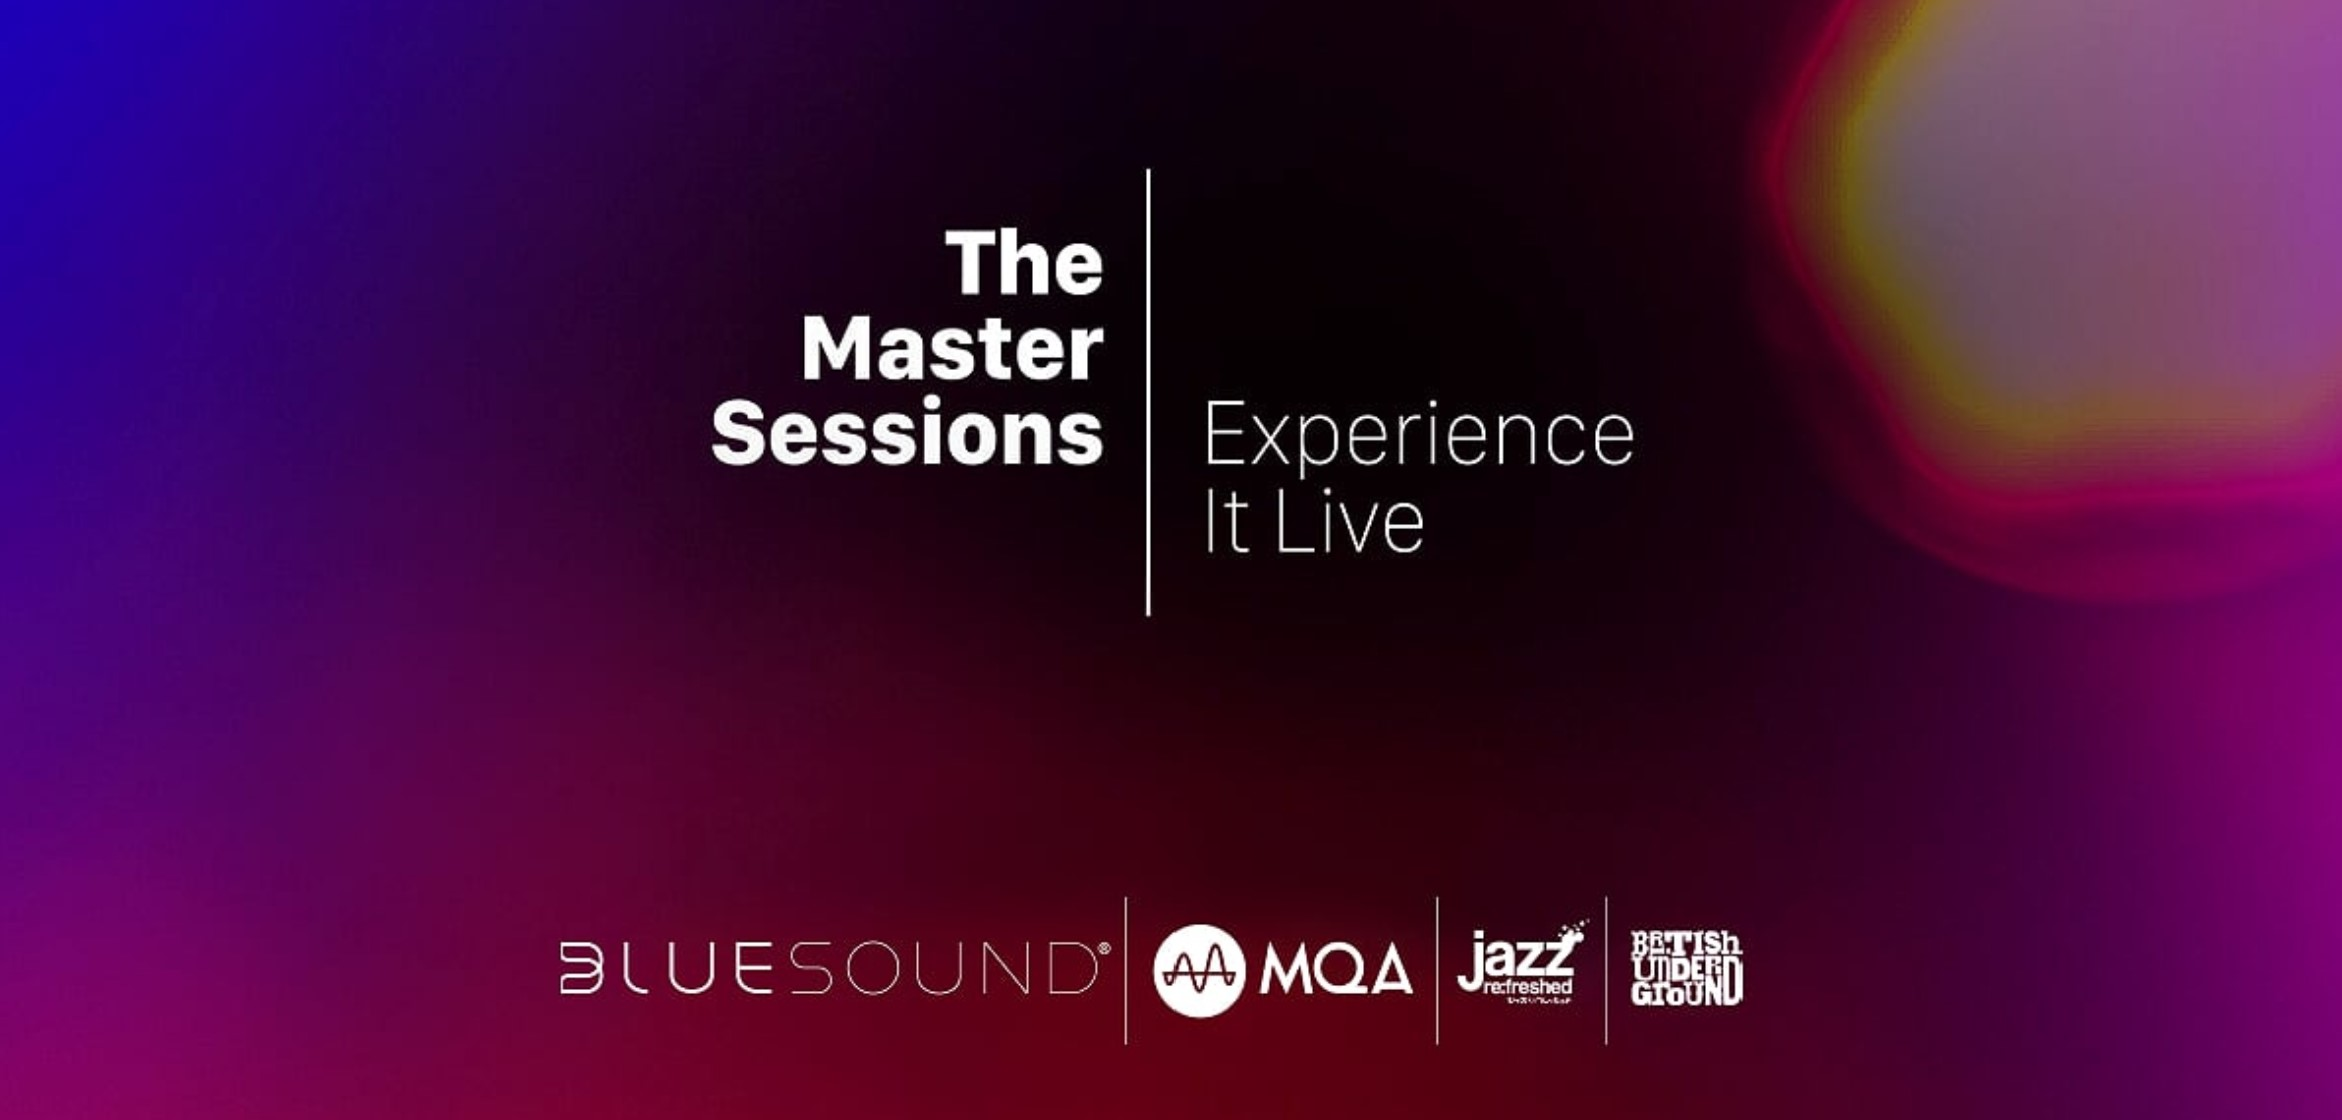 MQA And Bluesound Present The Master Sessions